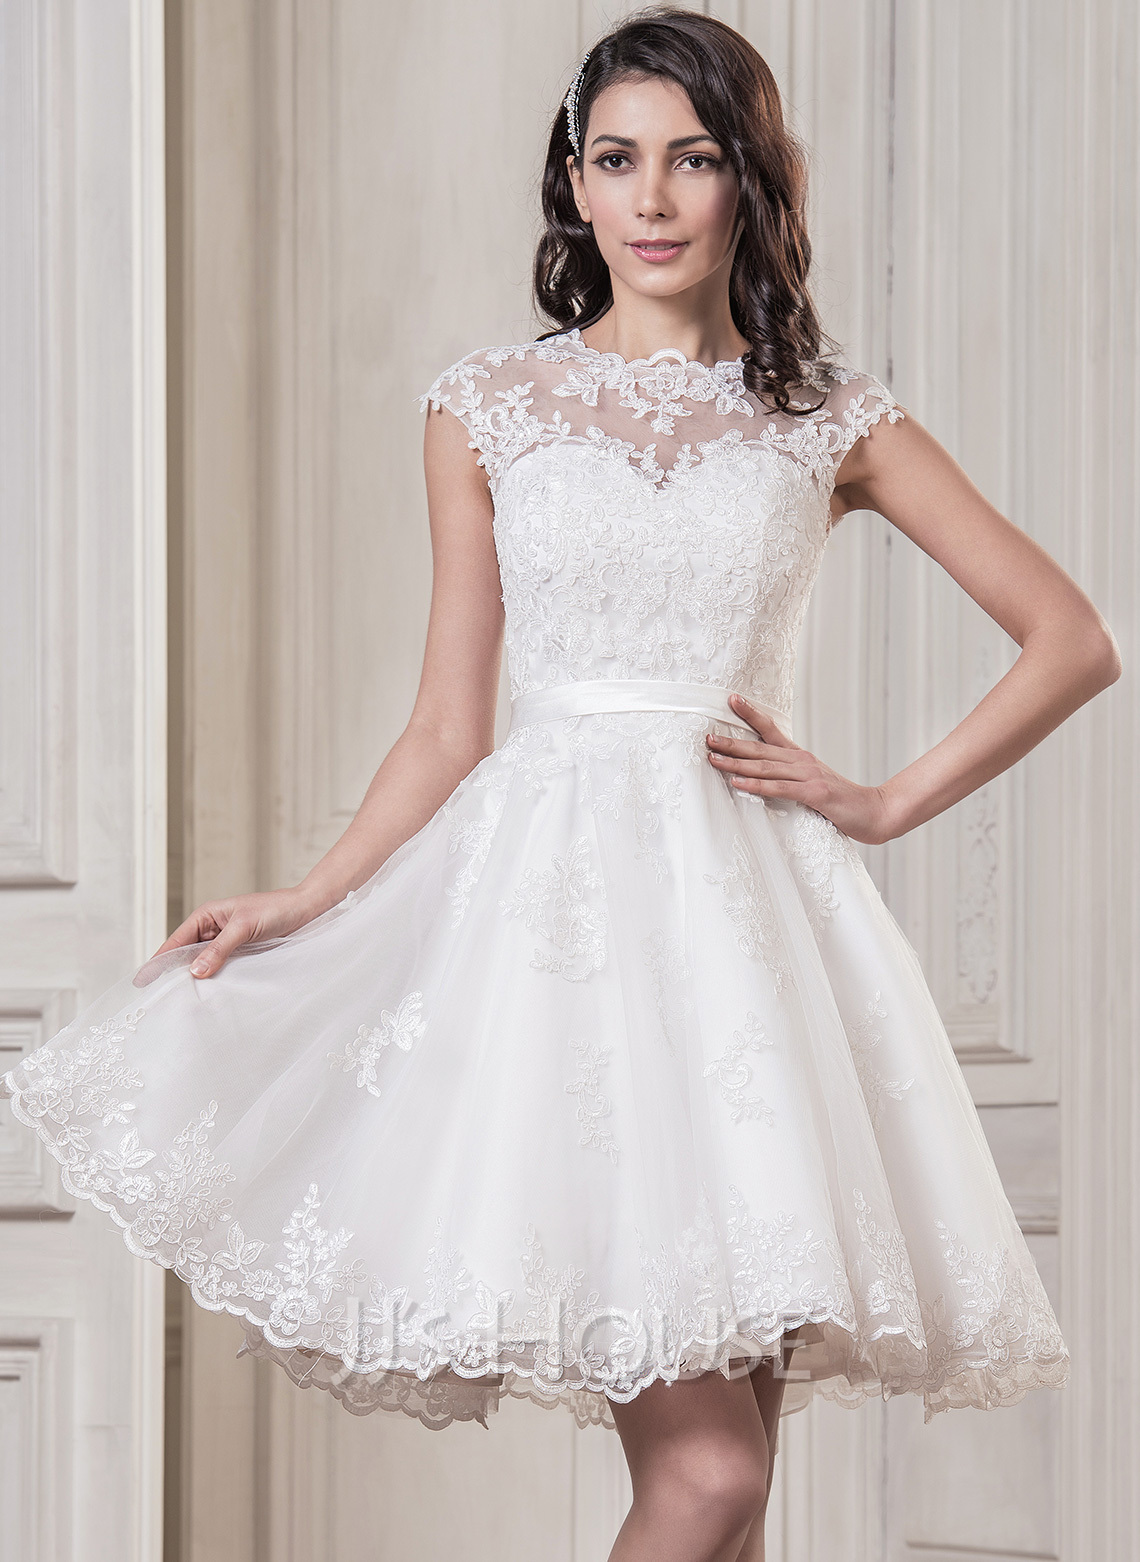 A-Line Illusion Knee-Length Tulle Wedding Dress With Appliques Lace